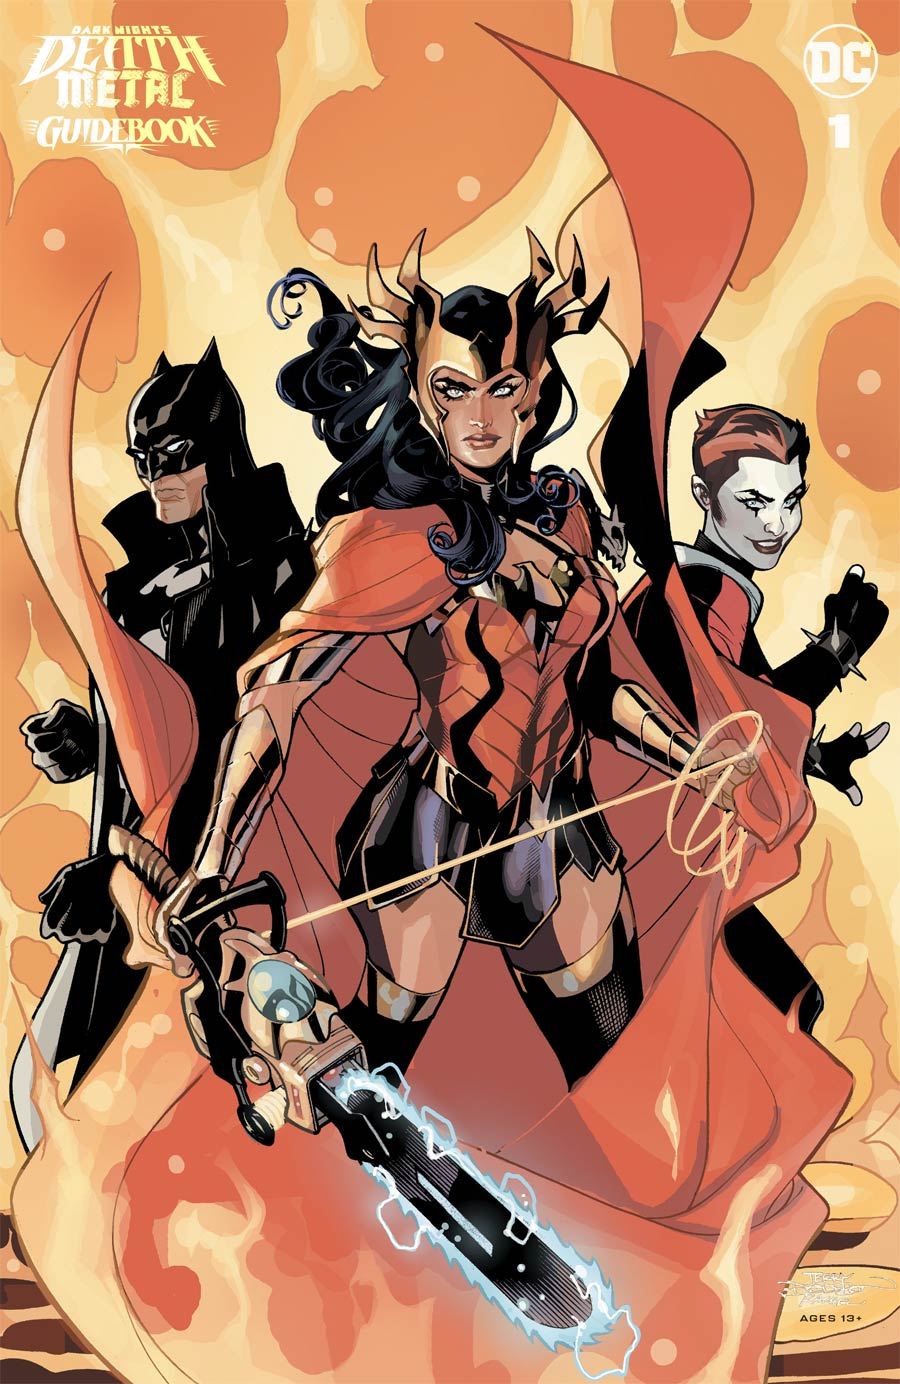 Dark Nights Death Metal Guidebook #1 Cover B Incentive Terry Dodson & Rachel Dodson Card Stock Variant Cover